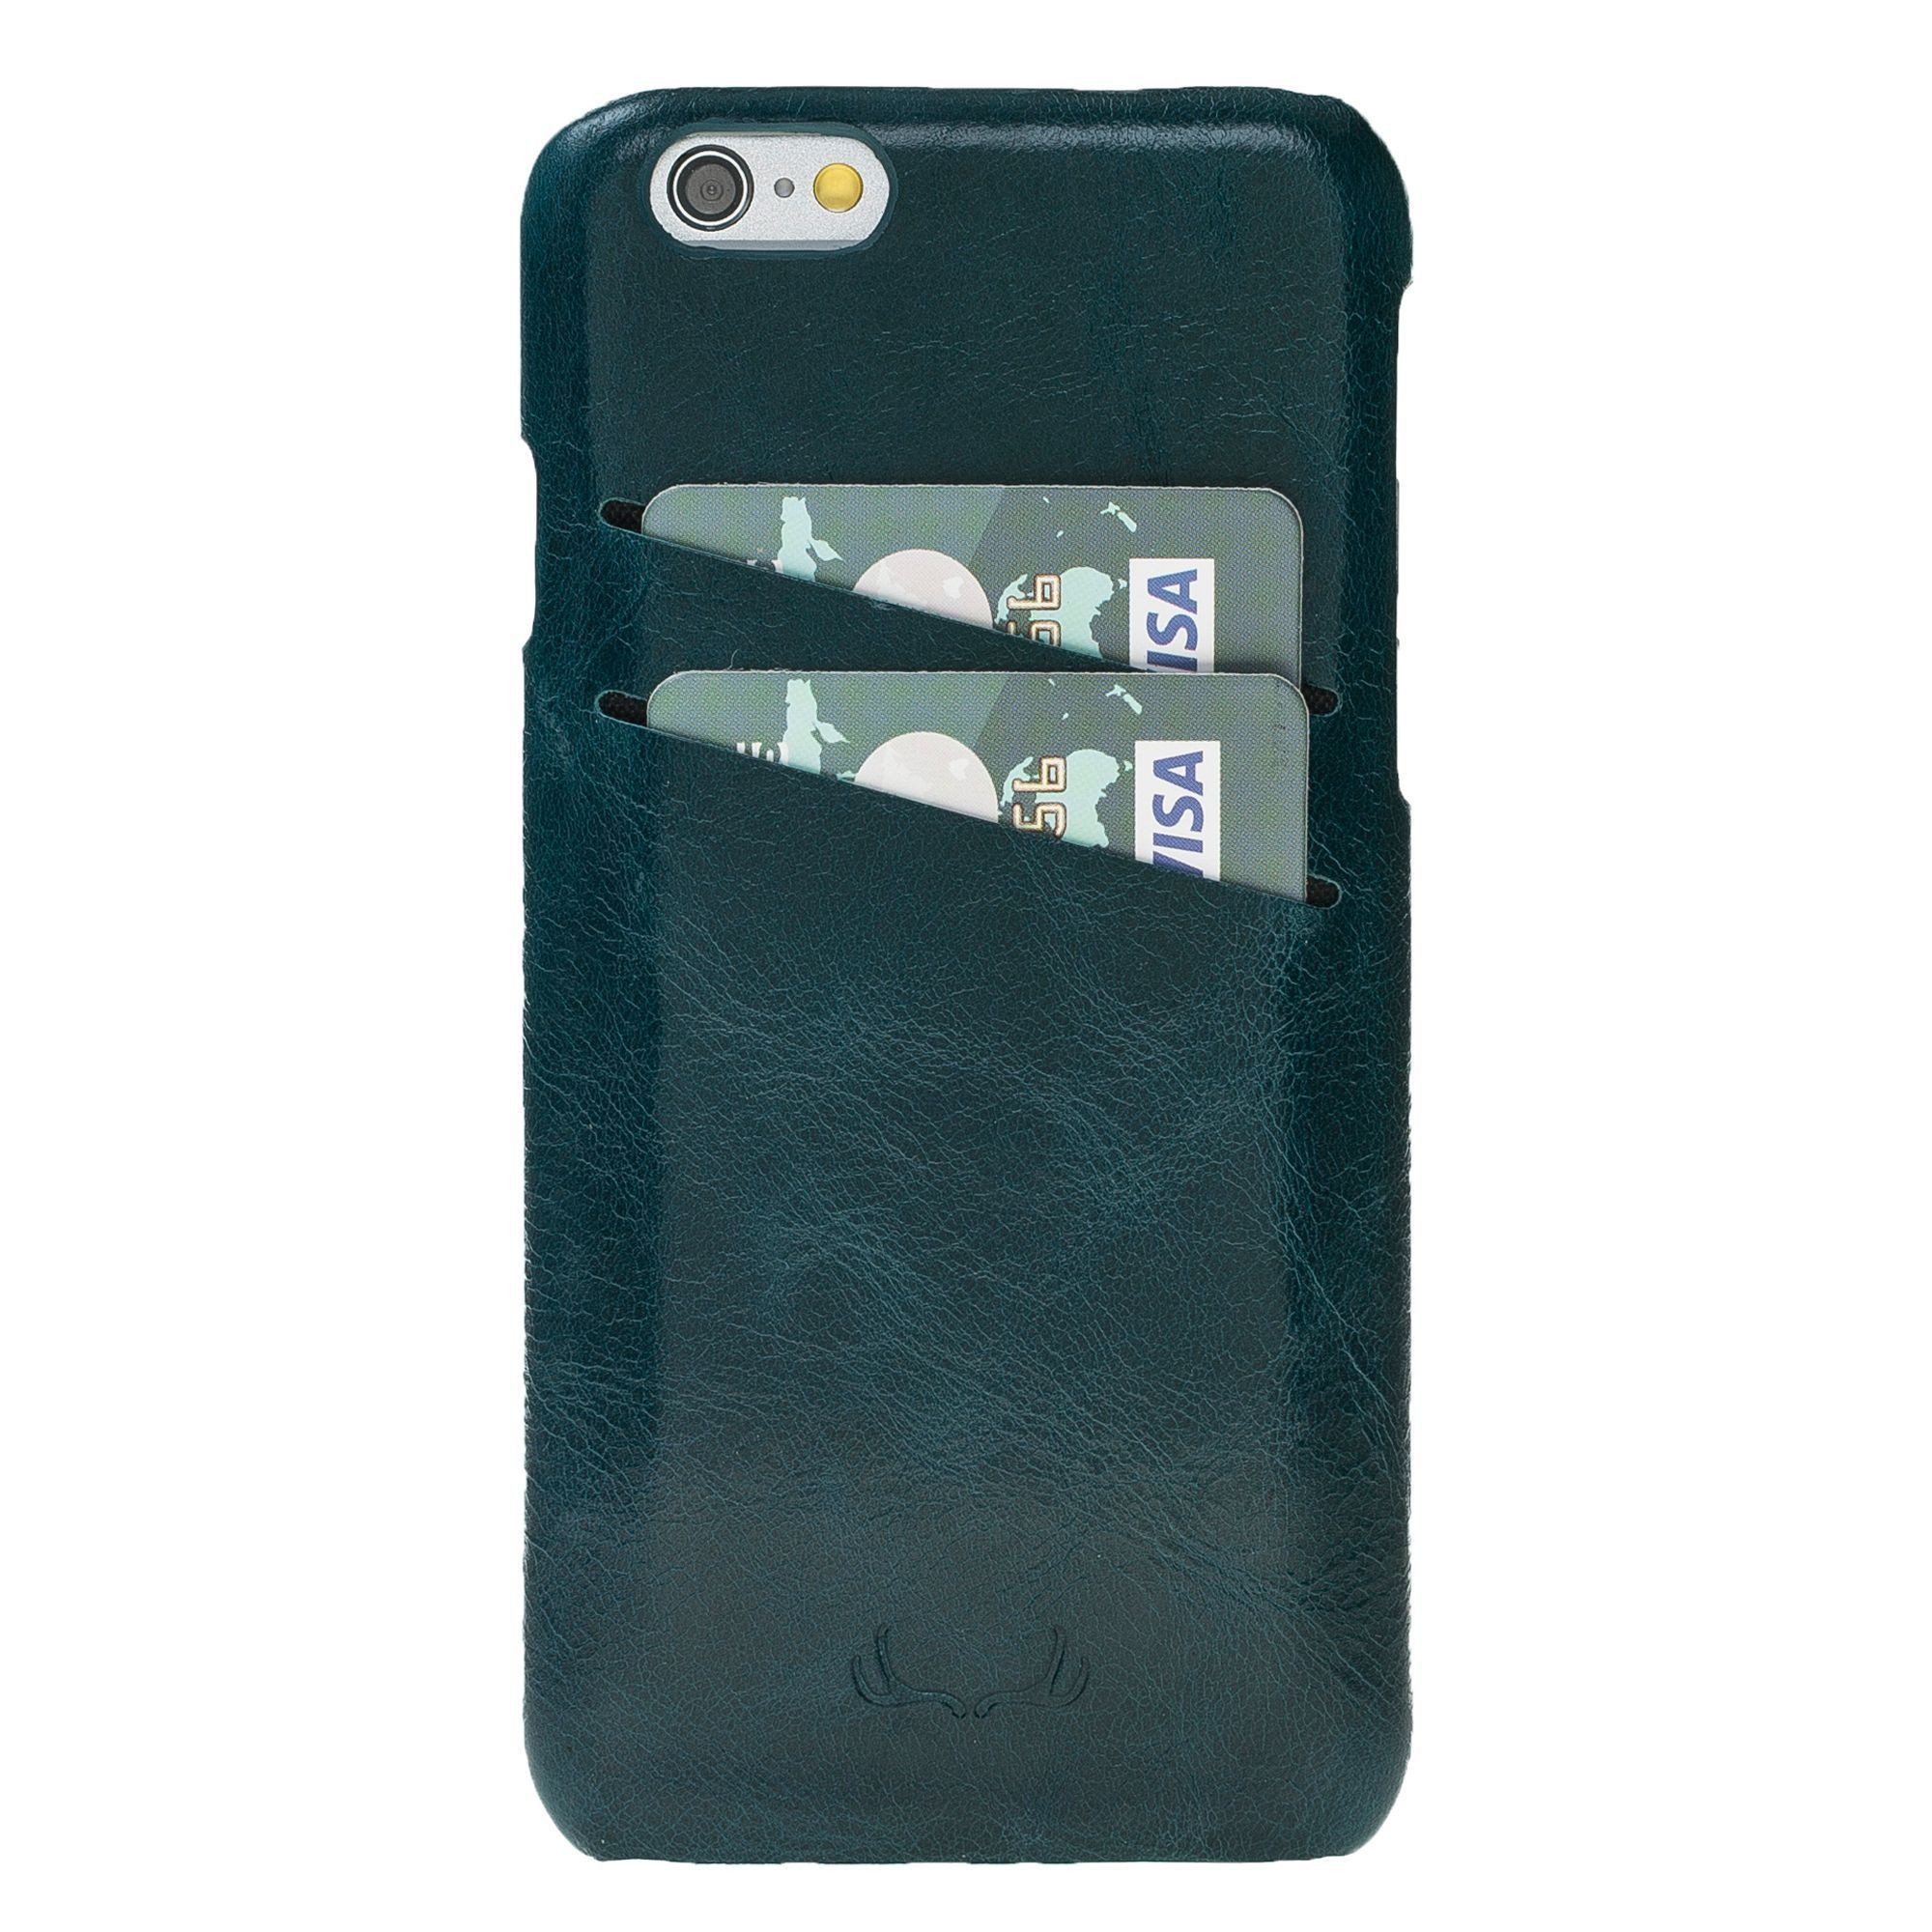 BNT Ultimate Jacket Credit Card Leather Cases - Vessel - iPhone 6/6S Plus - Blue